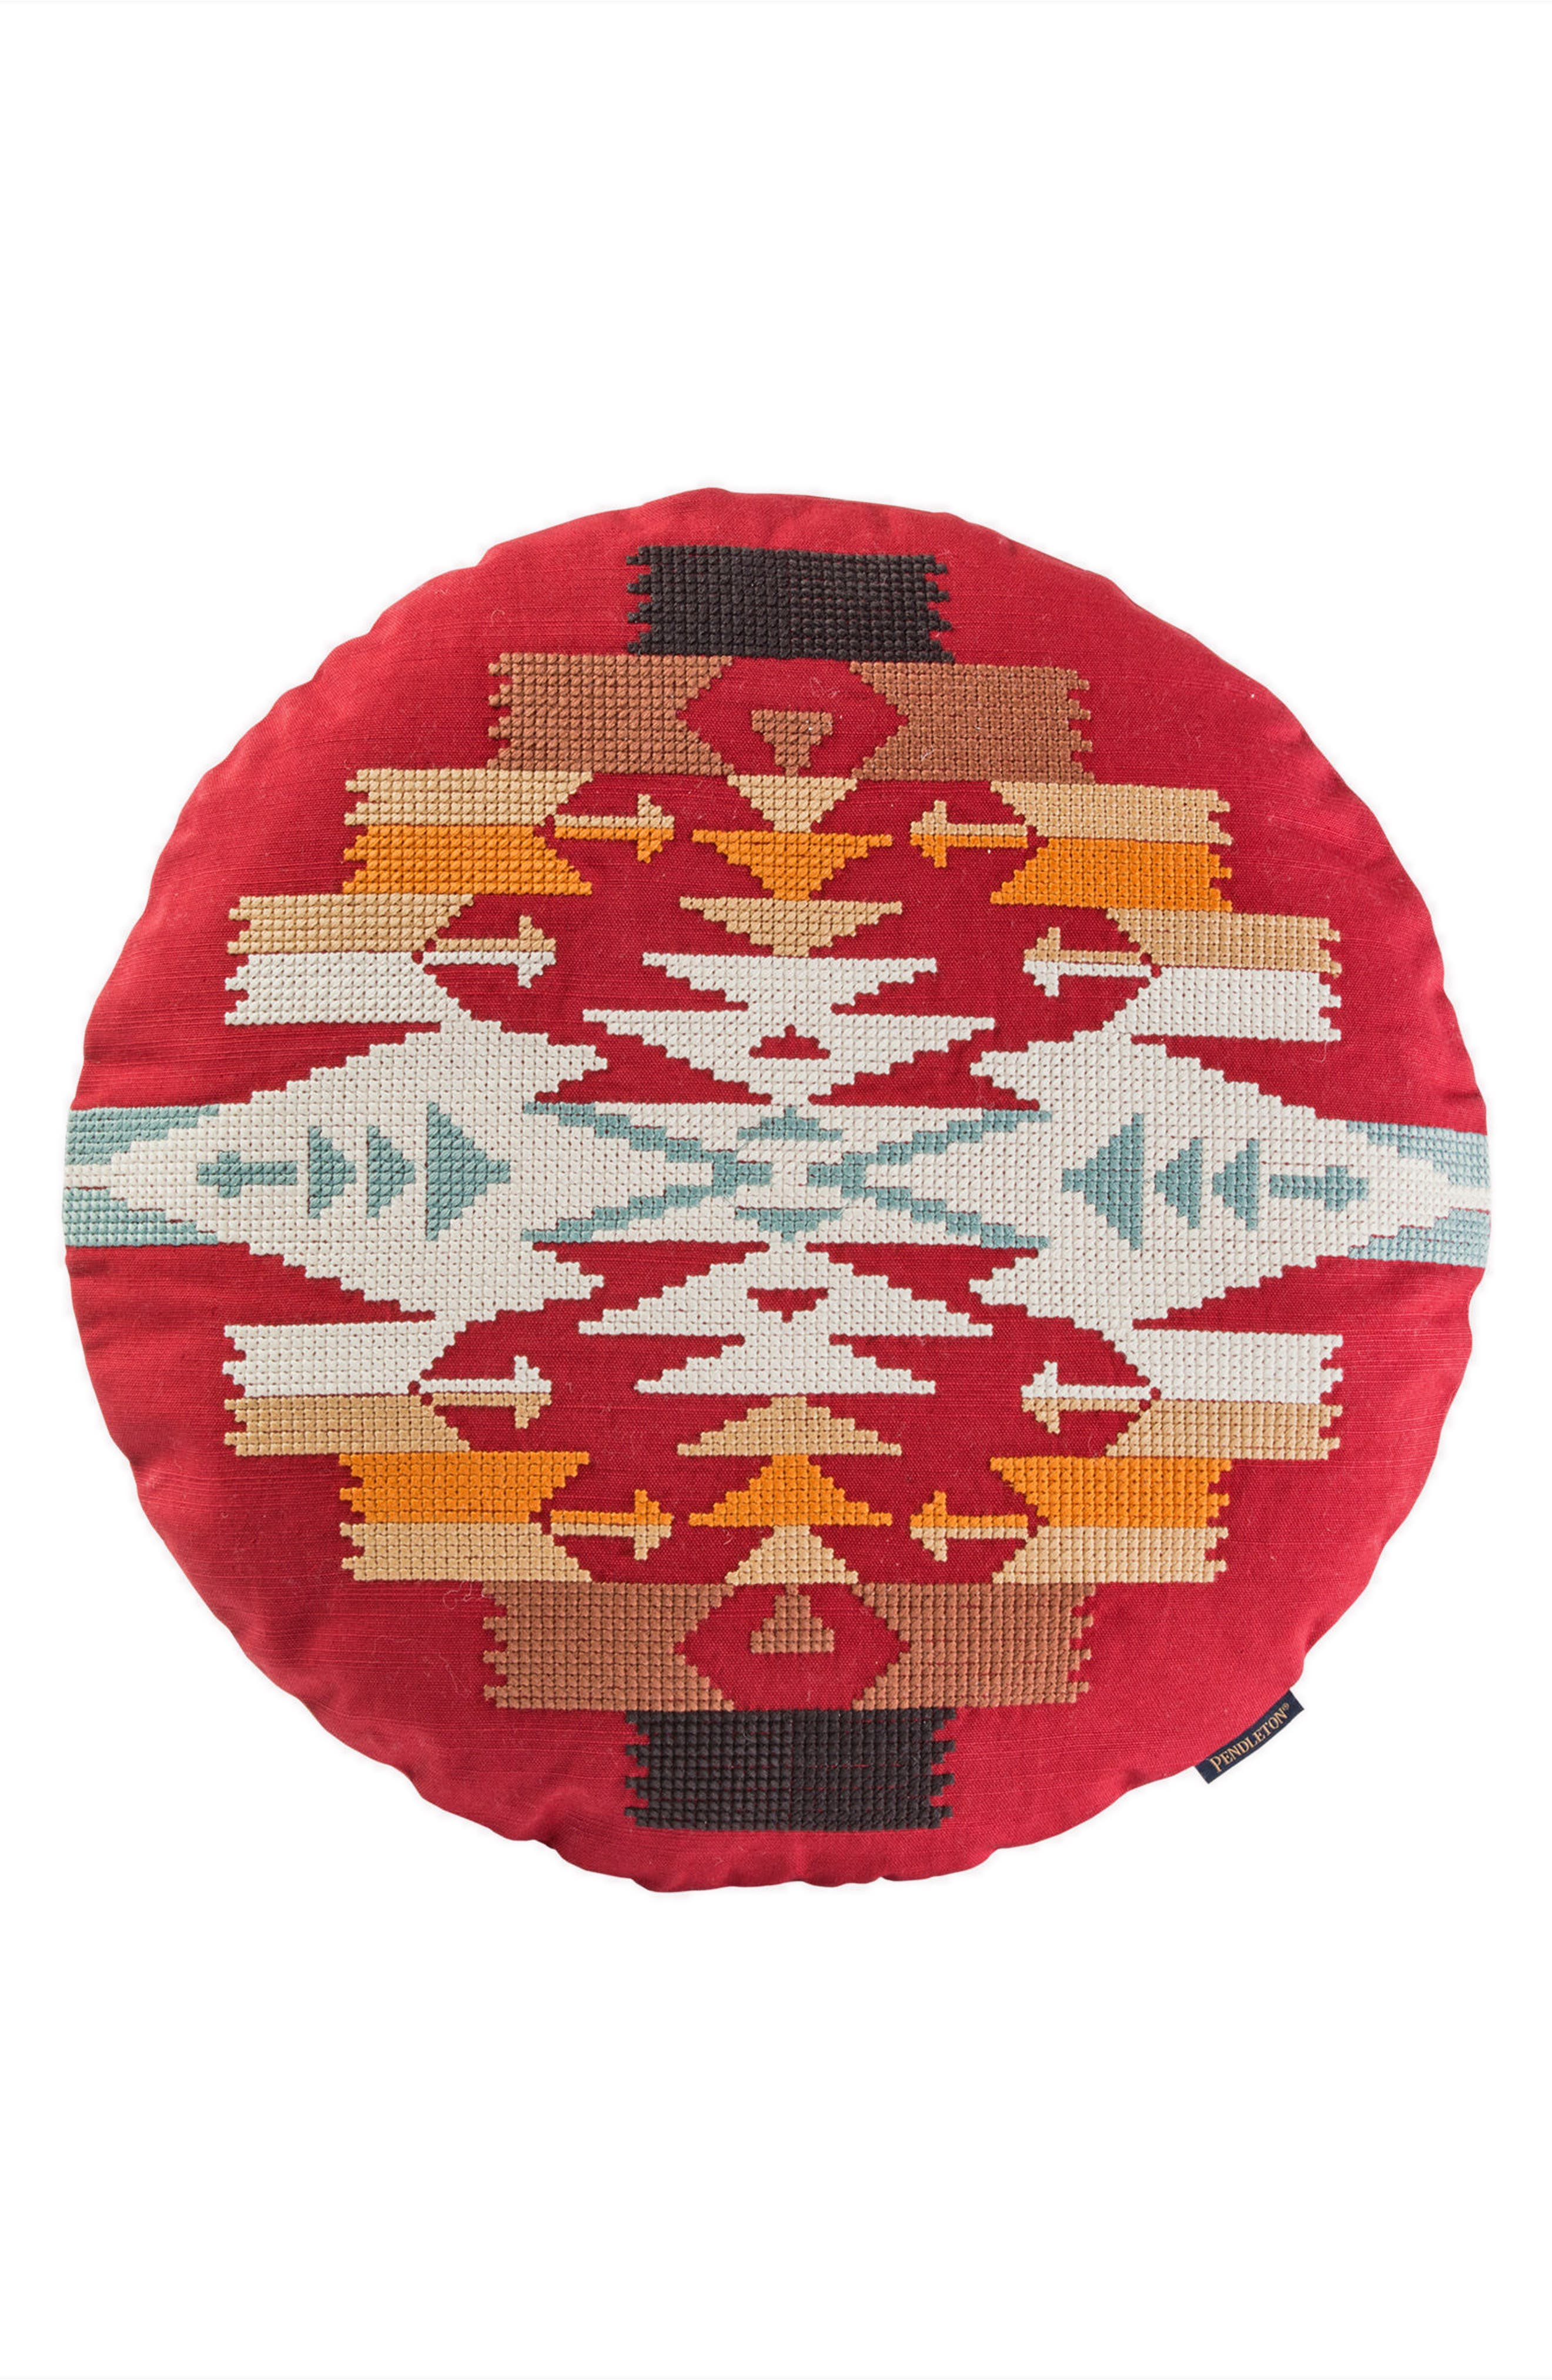 Tucson Saddle Exploded Cross Stitch Pillow,                             Main thumbnail 1, color,                             Scarlet